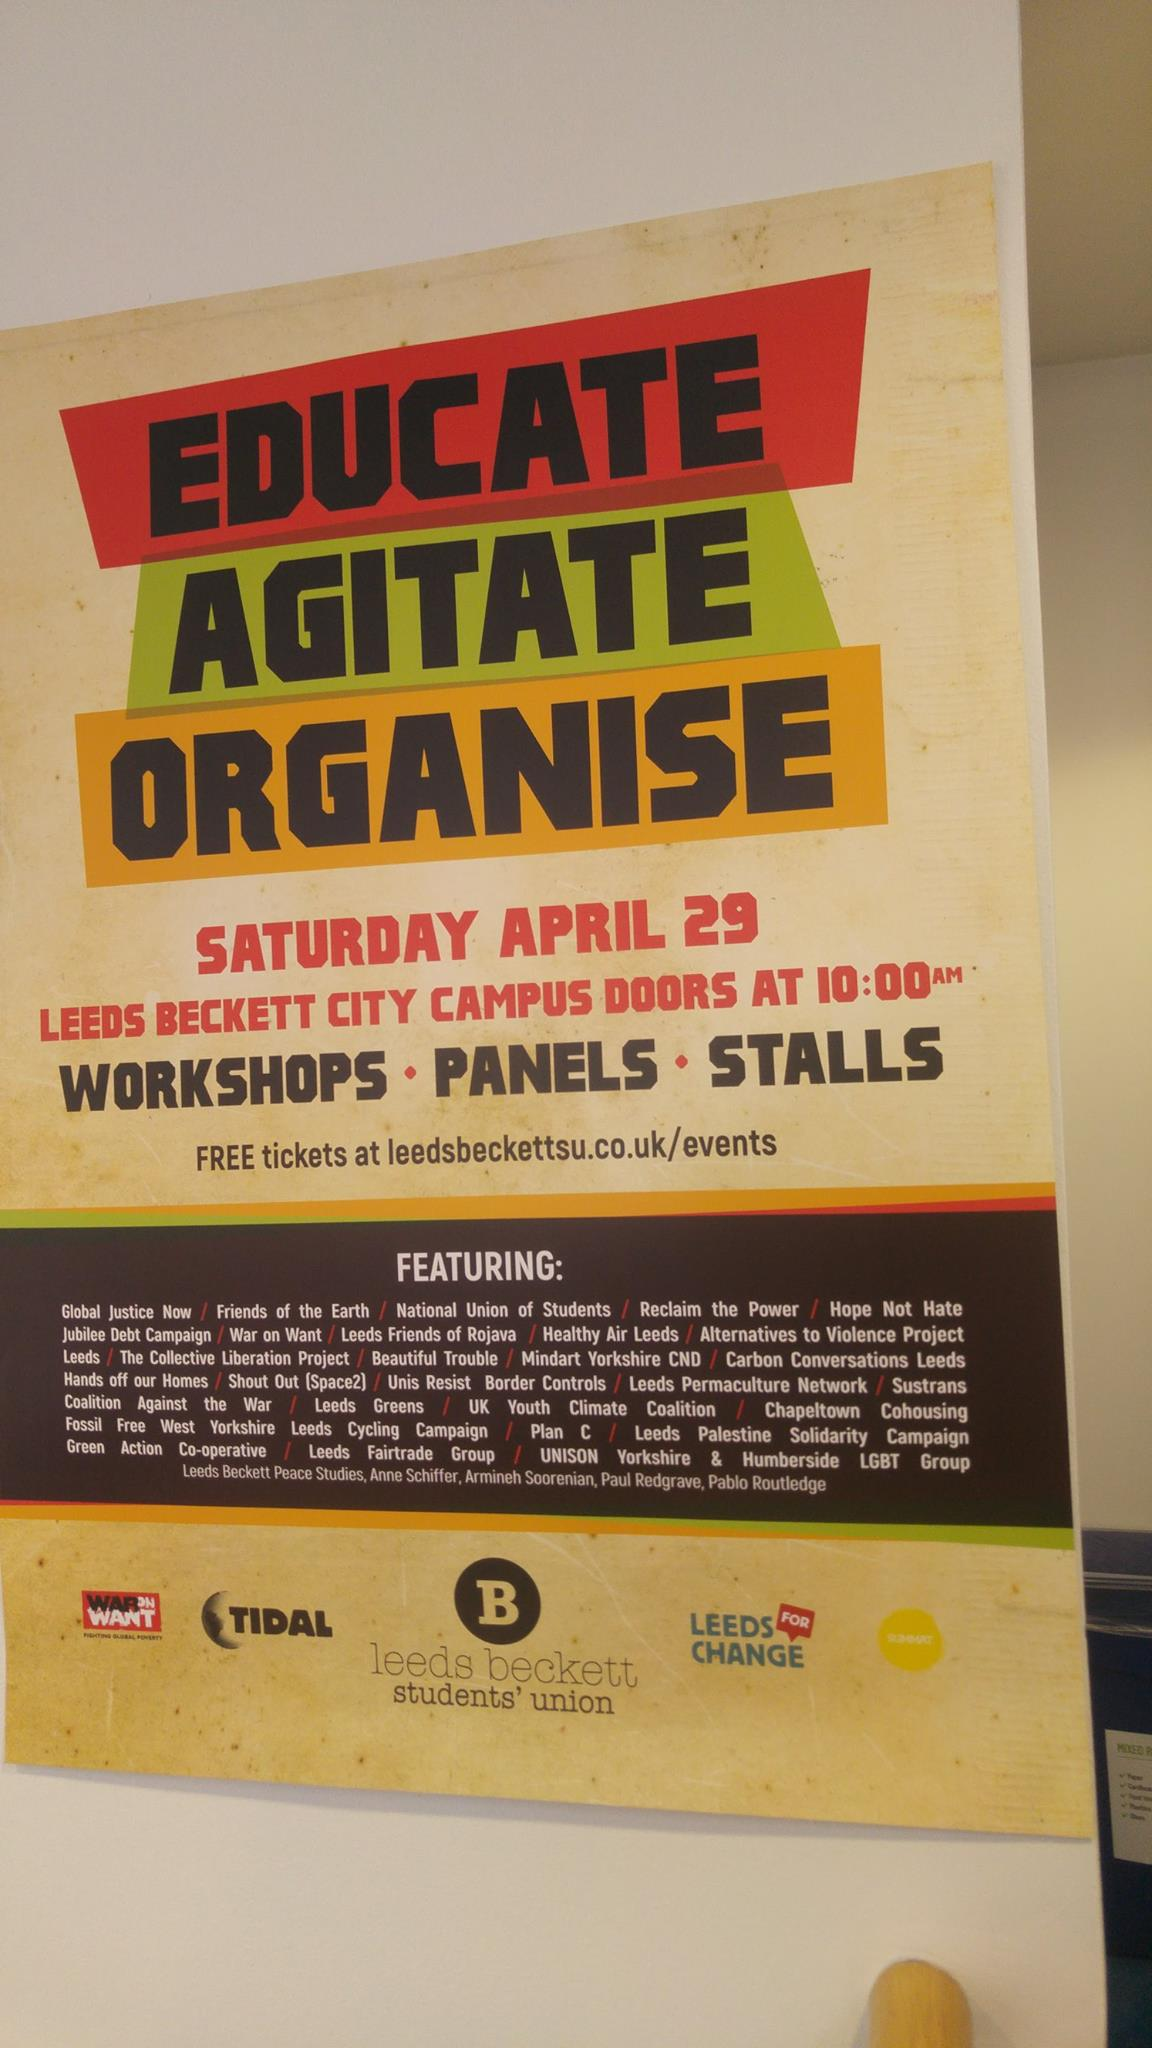 Educate, Agitate, Organise event poster, by Leeds Tidal